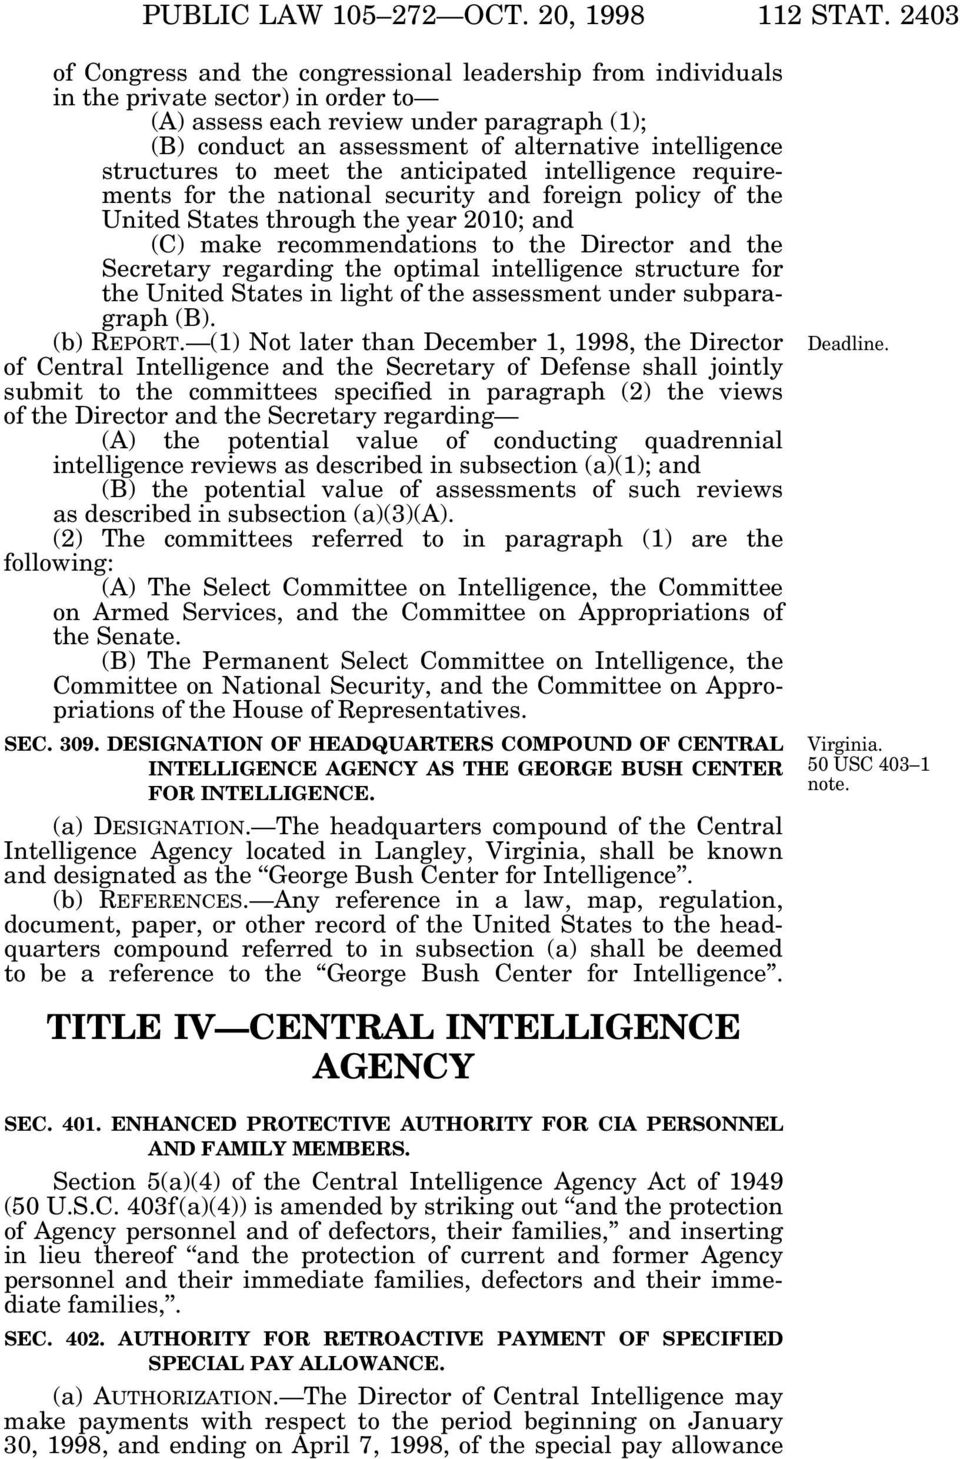 structures to meet the anticipated intelligence requirements for the national security and foreign policy of the United States through the year 2010; and (C) make recommendations to the Director and